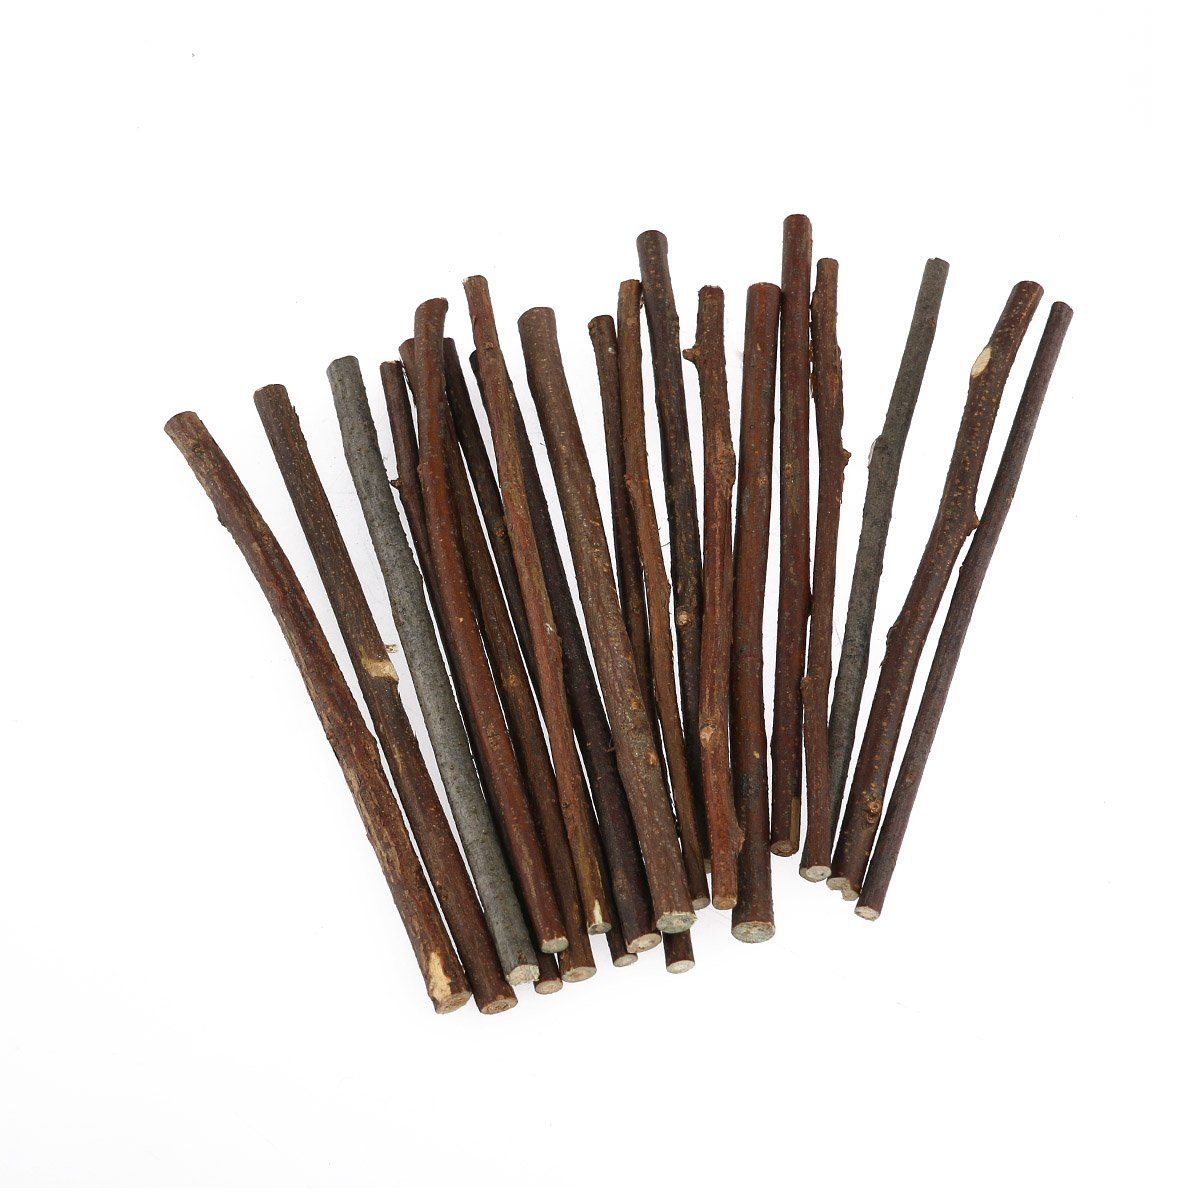 100pcs 5 Inch Long 0.1-0.2 Inch in Diameter Wood Log Sticks for Crafts Photo Props By HANBEN